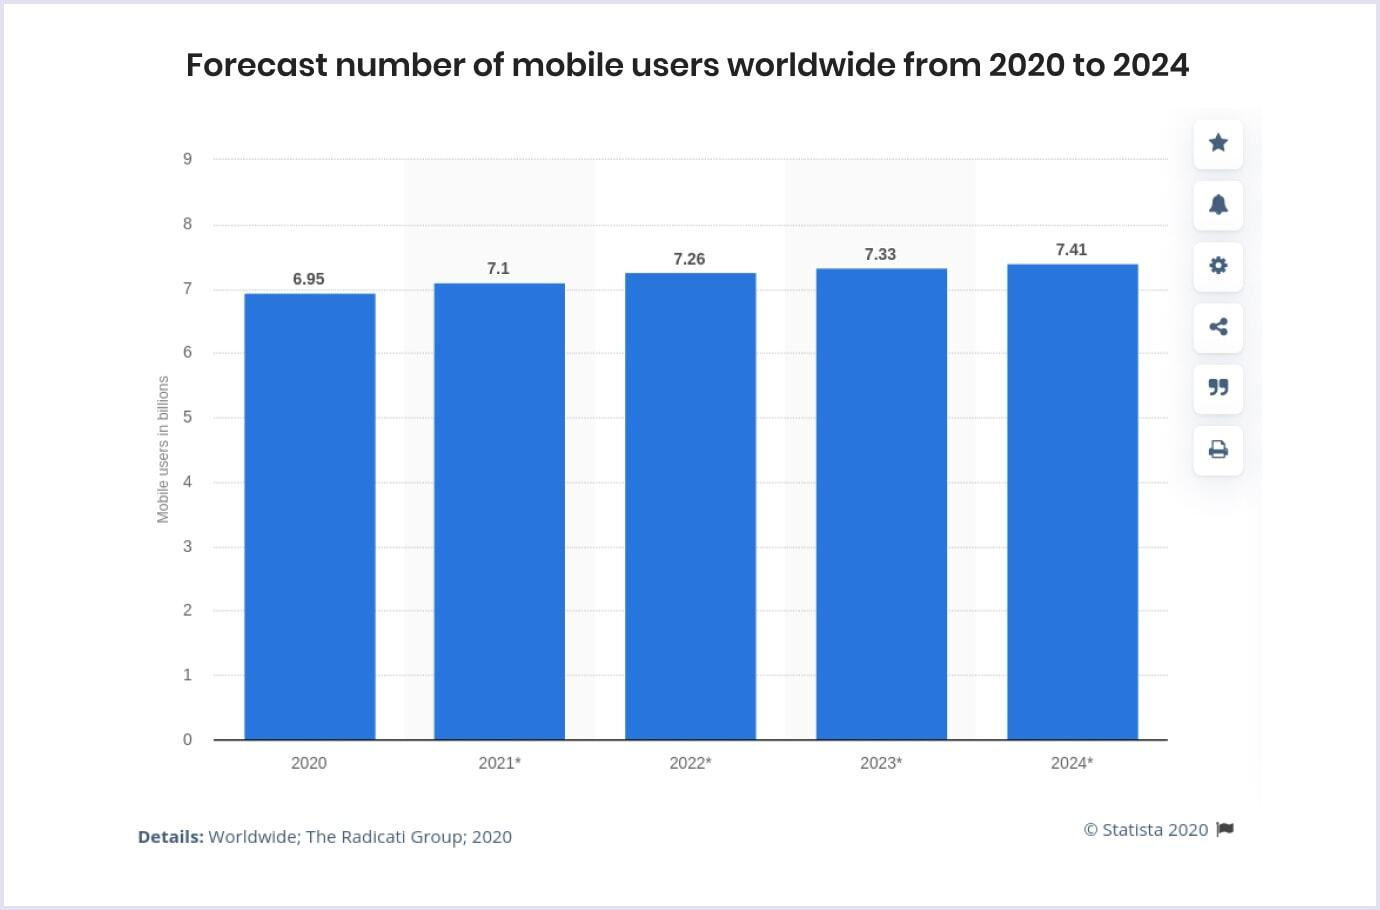 Forecast number of mobile users worldwide for 2020-2024